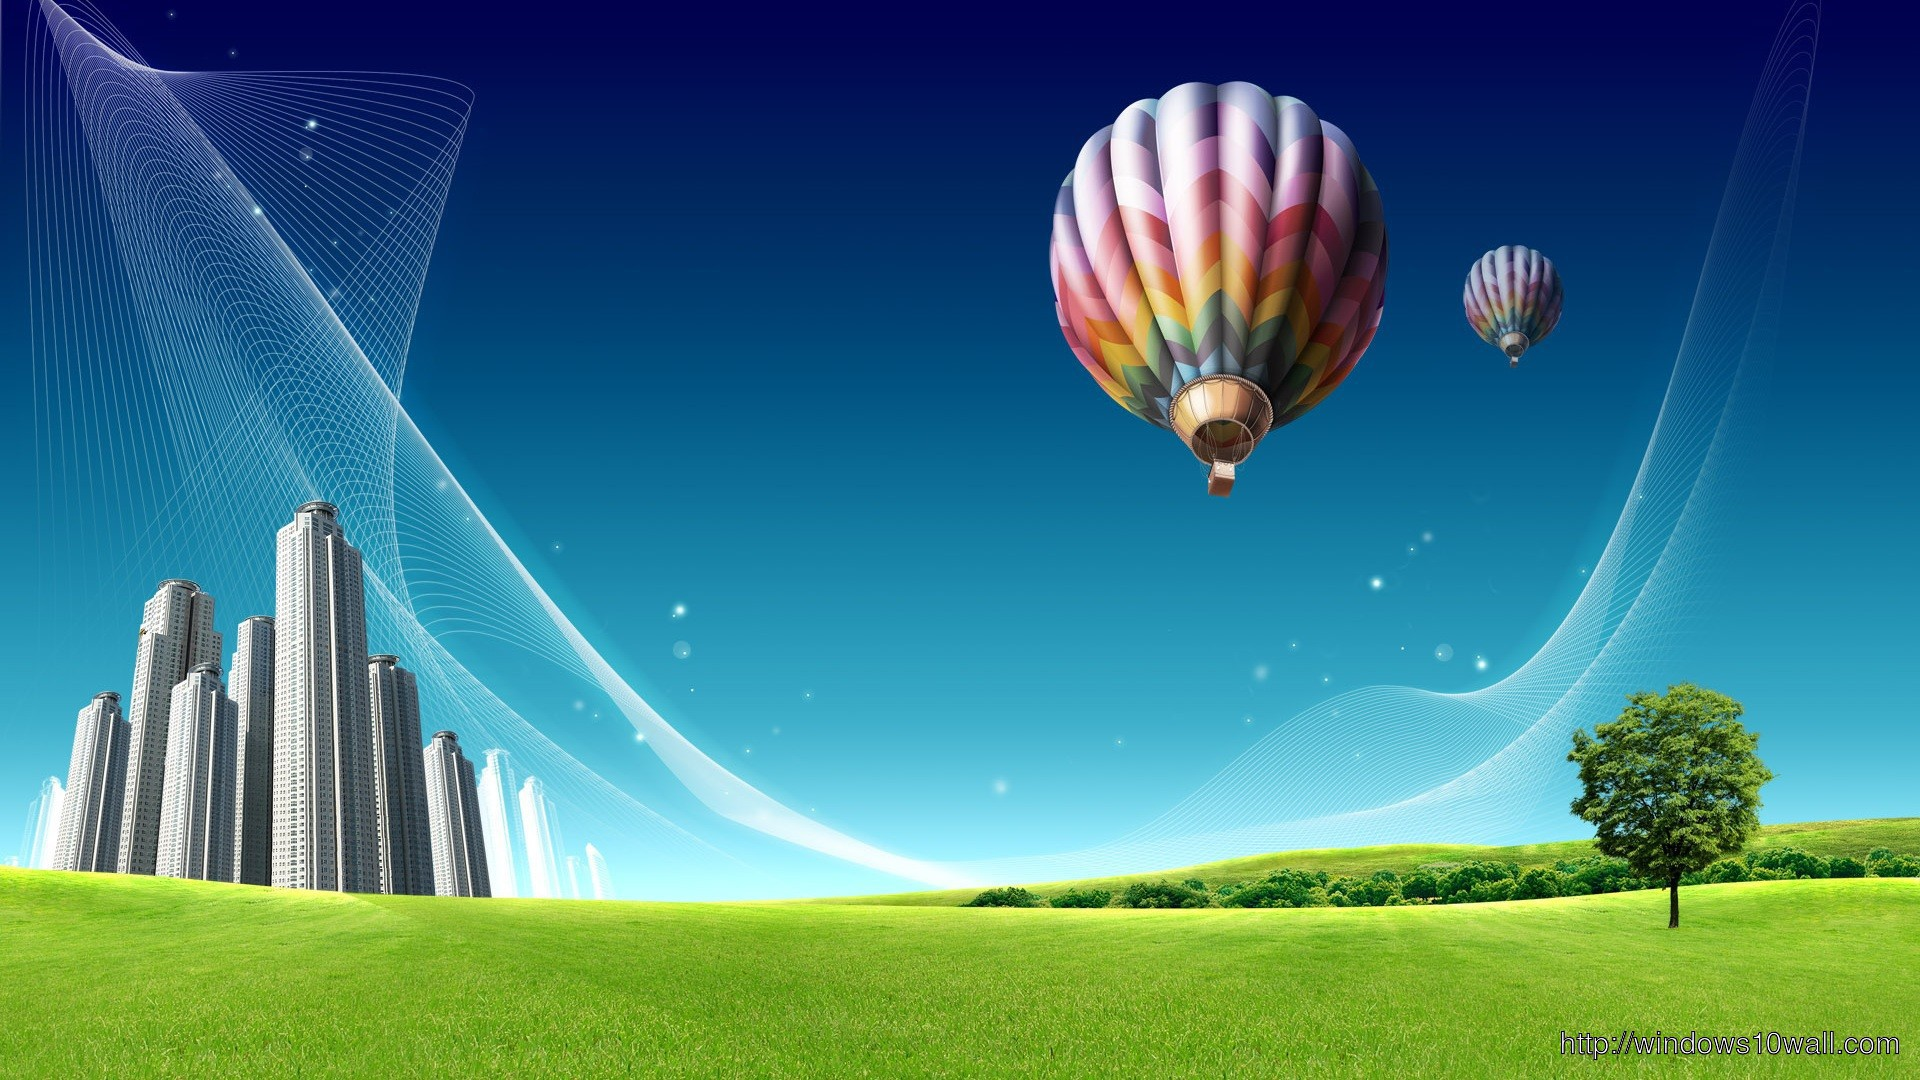 Hot Air Balloon Hd Widescreen Wallpaper Windows 10 Wallpapers